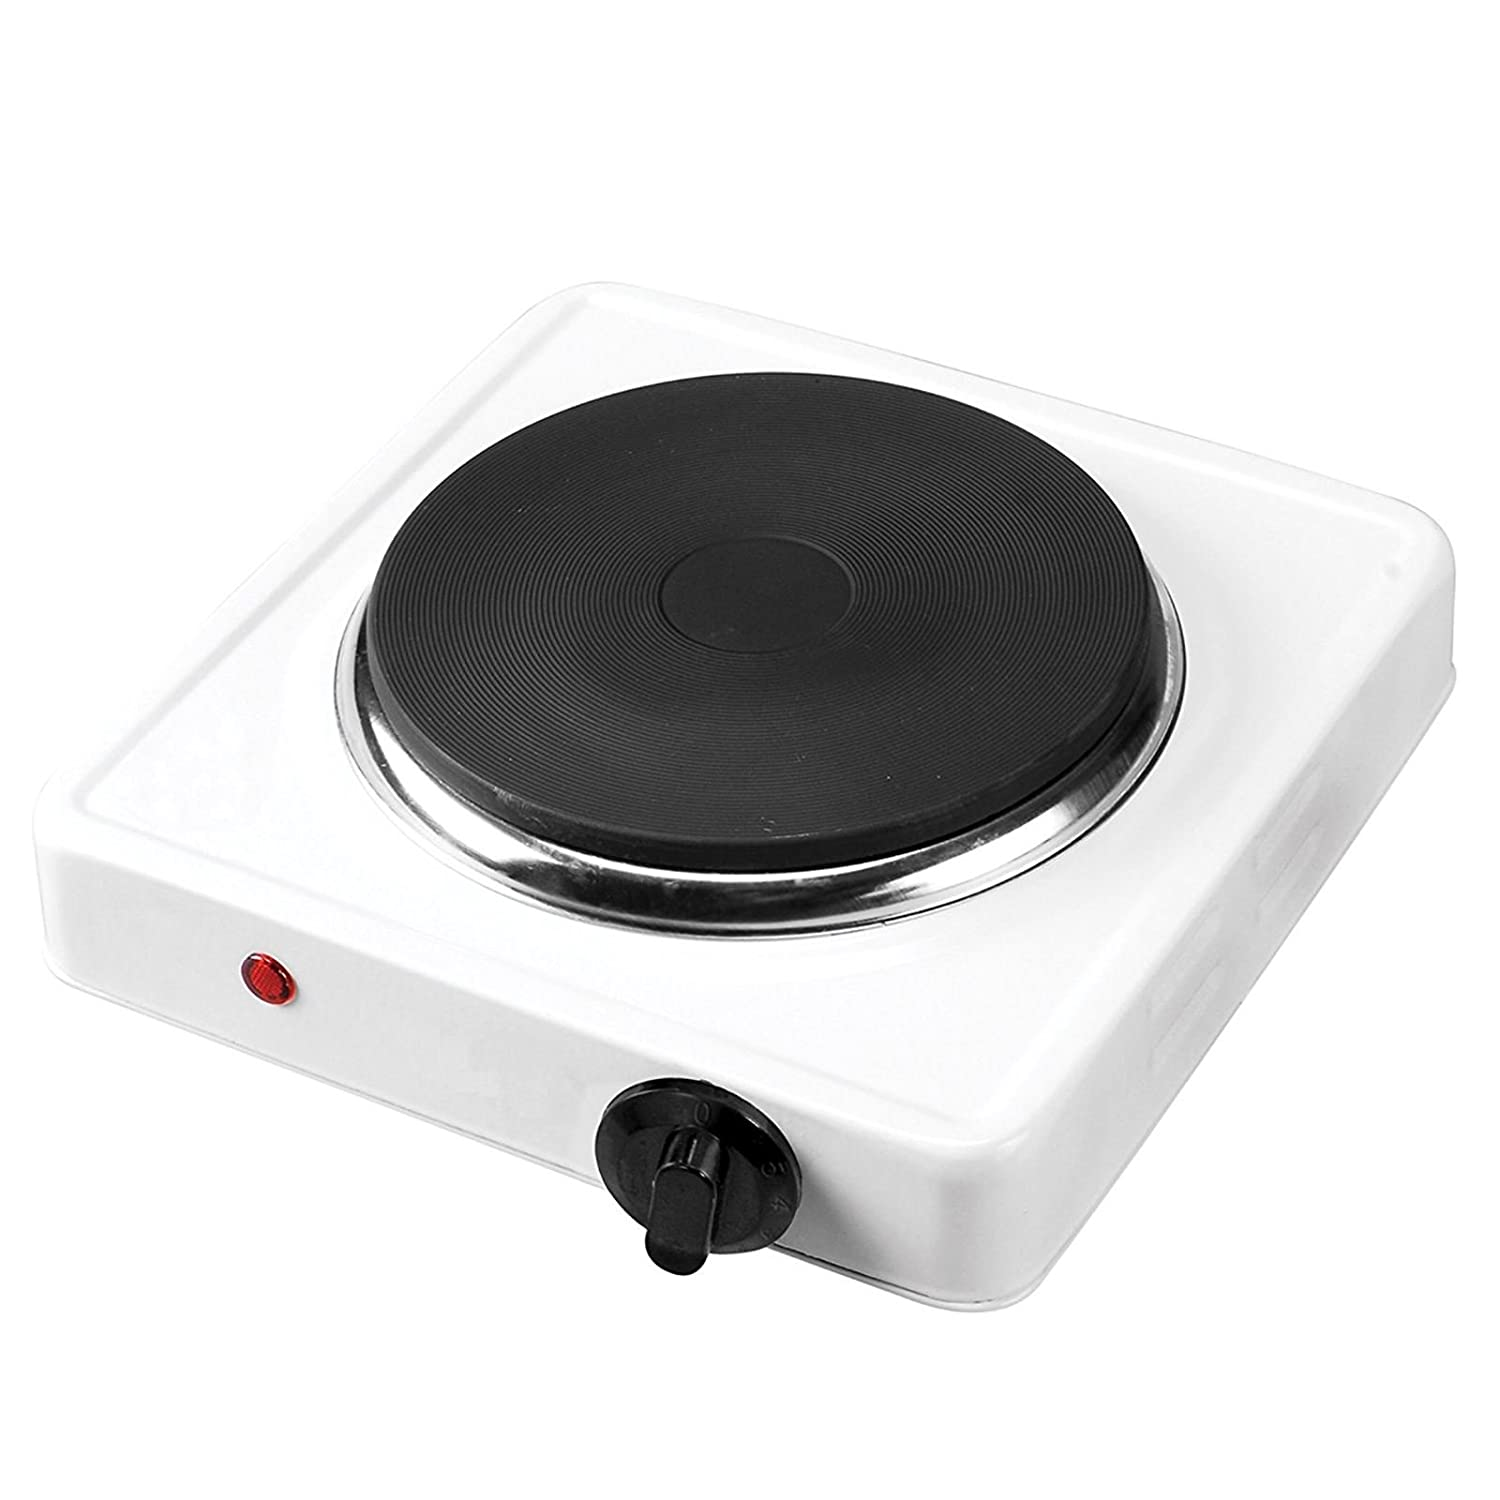 ASAB Portable 1000W Electric Hot Plate And Warmer Single Ring Table Top Cooker Kitchen Hob Caravan Camping Home Stove